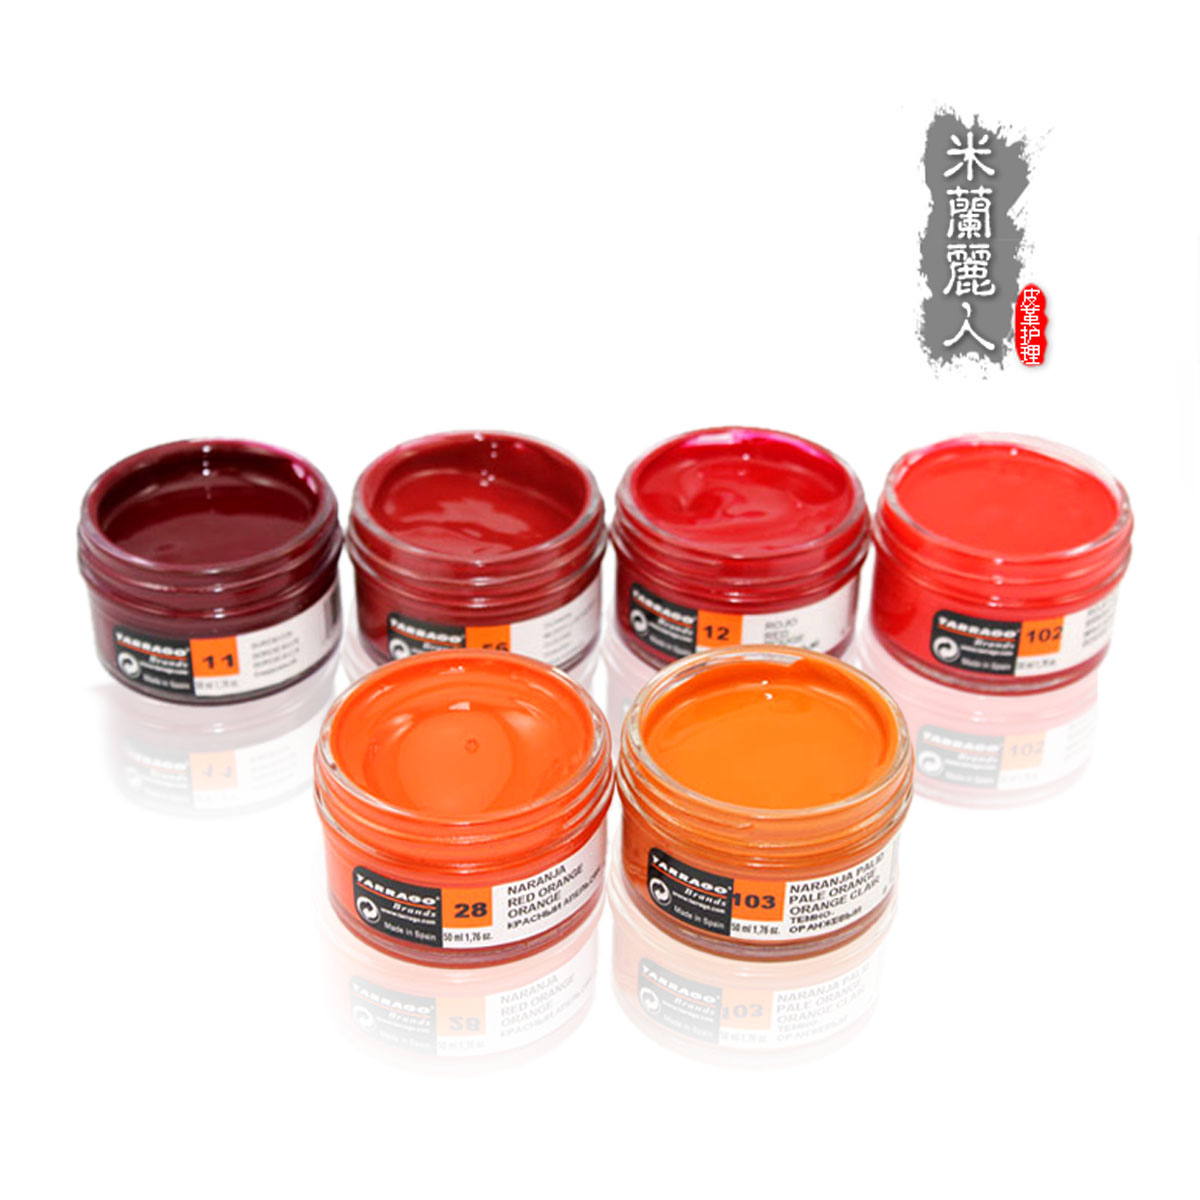 SGD13.94] Orange Polish complementary maintenance wine red leather ...